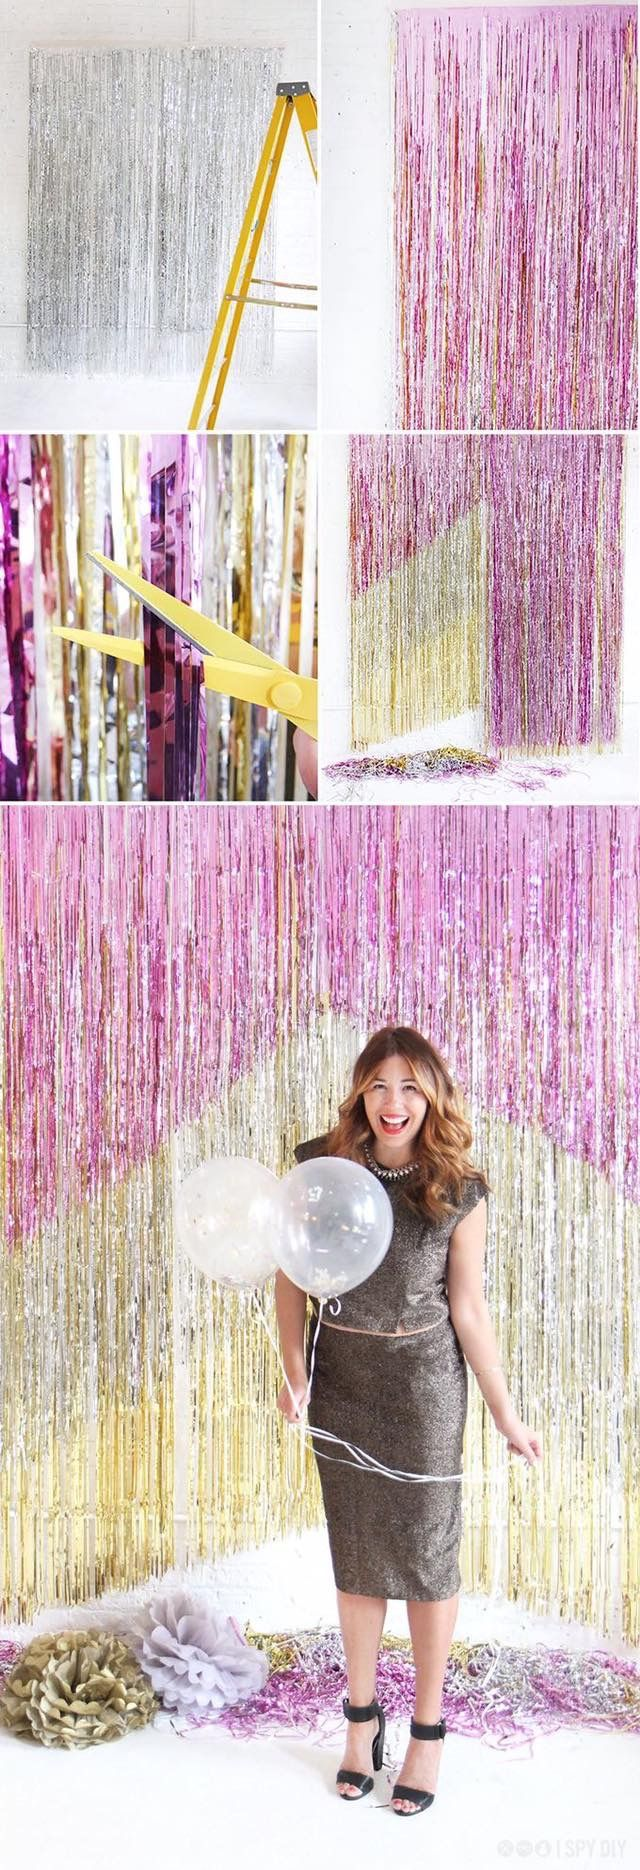 girl with balls on the background of tinsel